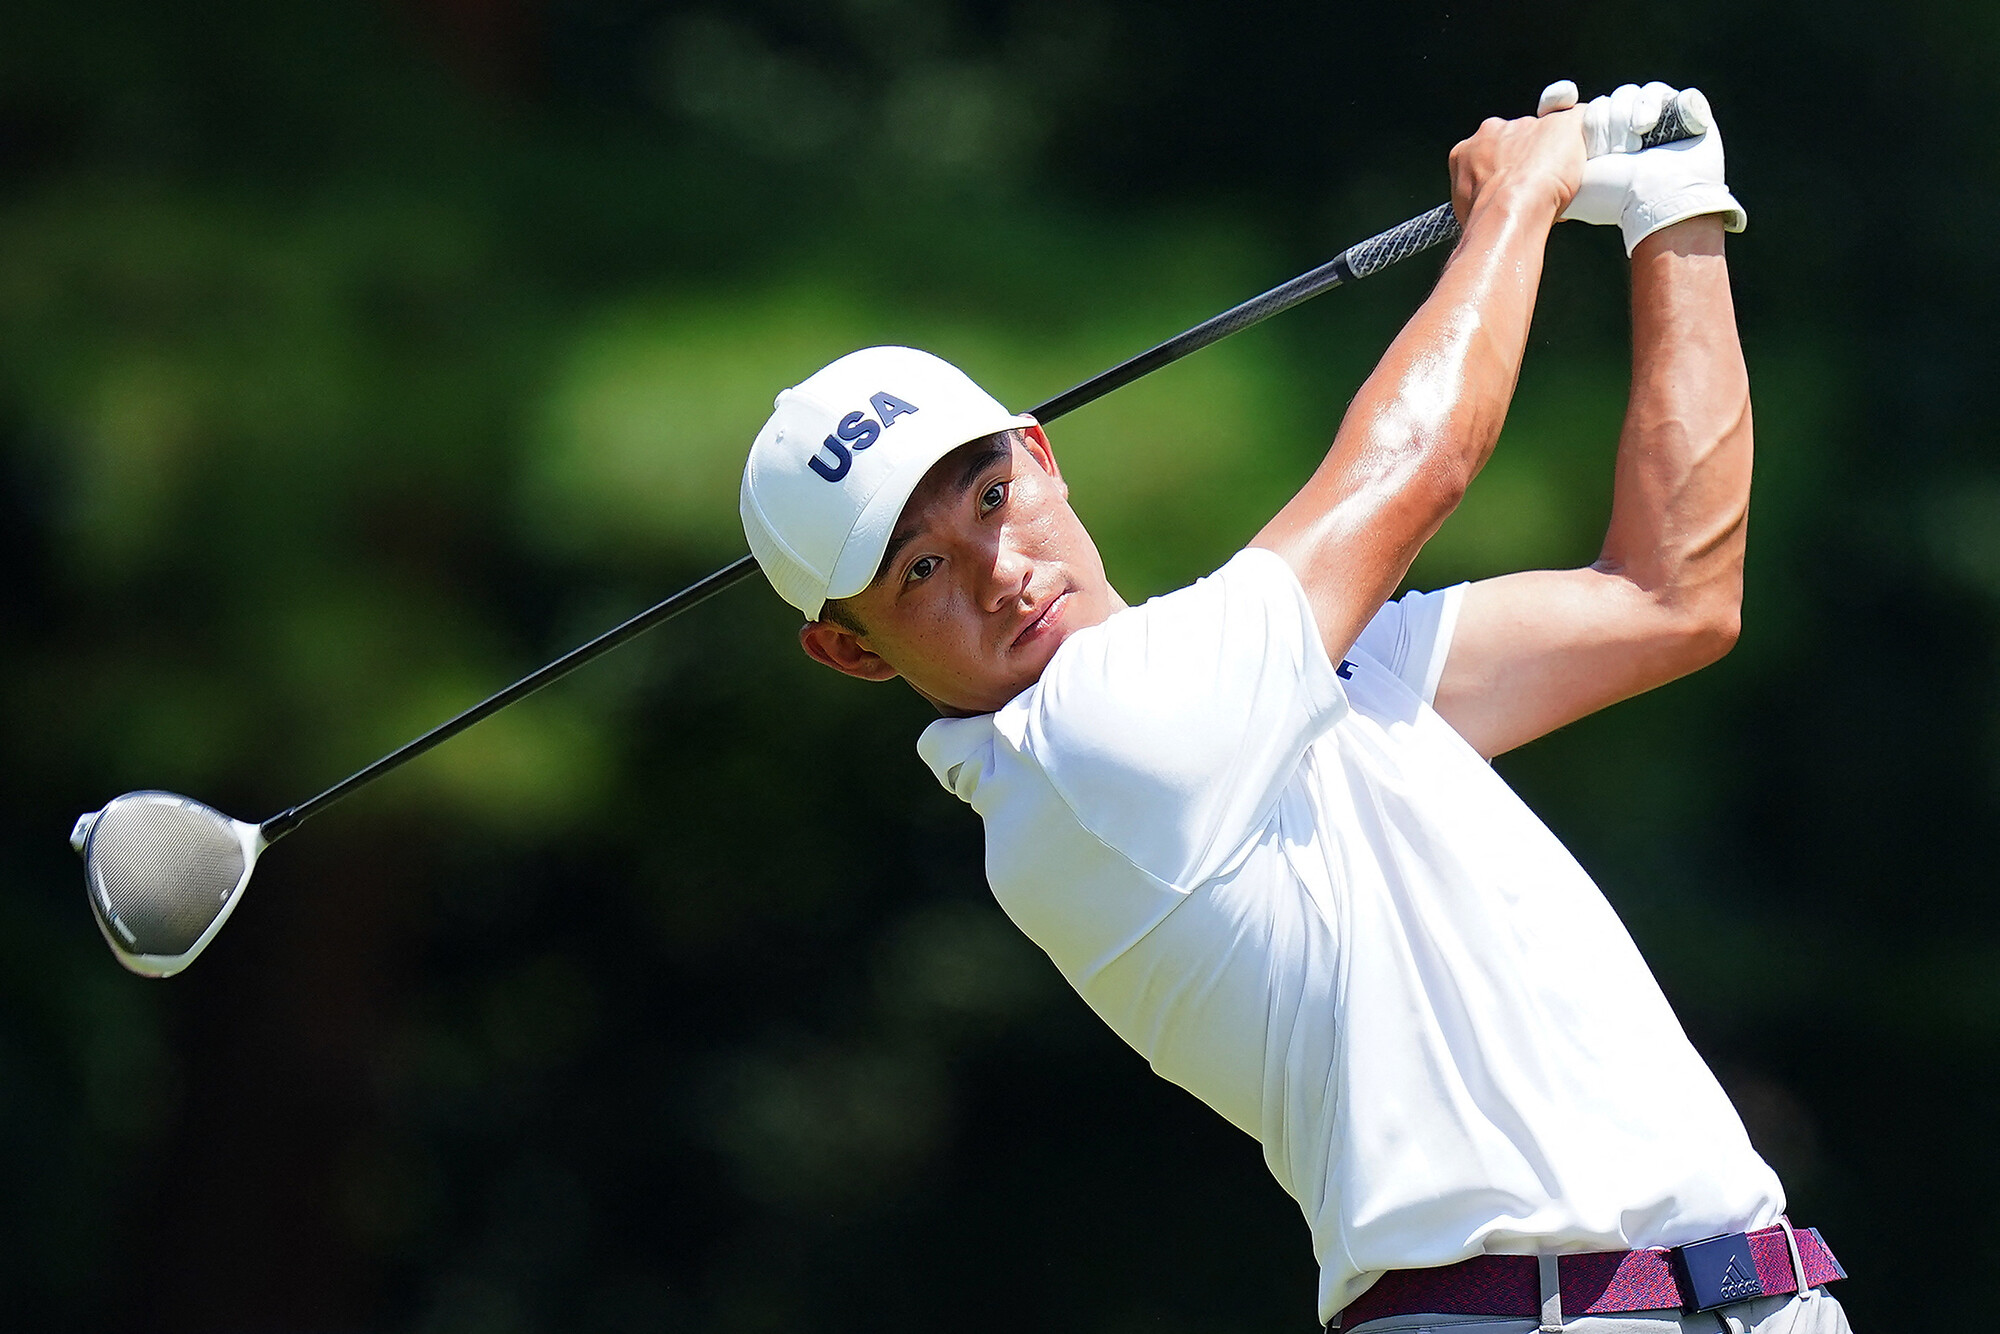 <i>Yoshihiro Iwamo/AFP/Getty Images</i><br/>Morikawa practices ahead of the Tokyo 2020 Olympic Games golf competition.